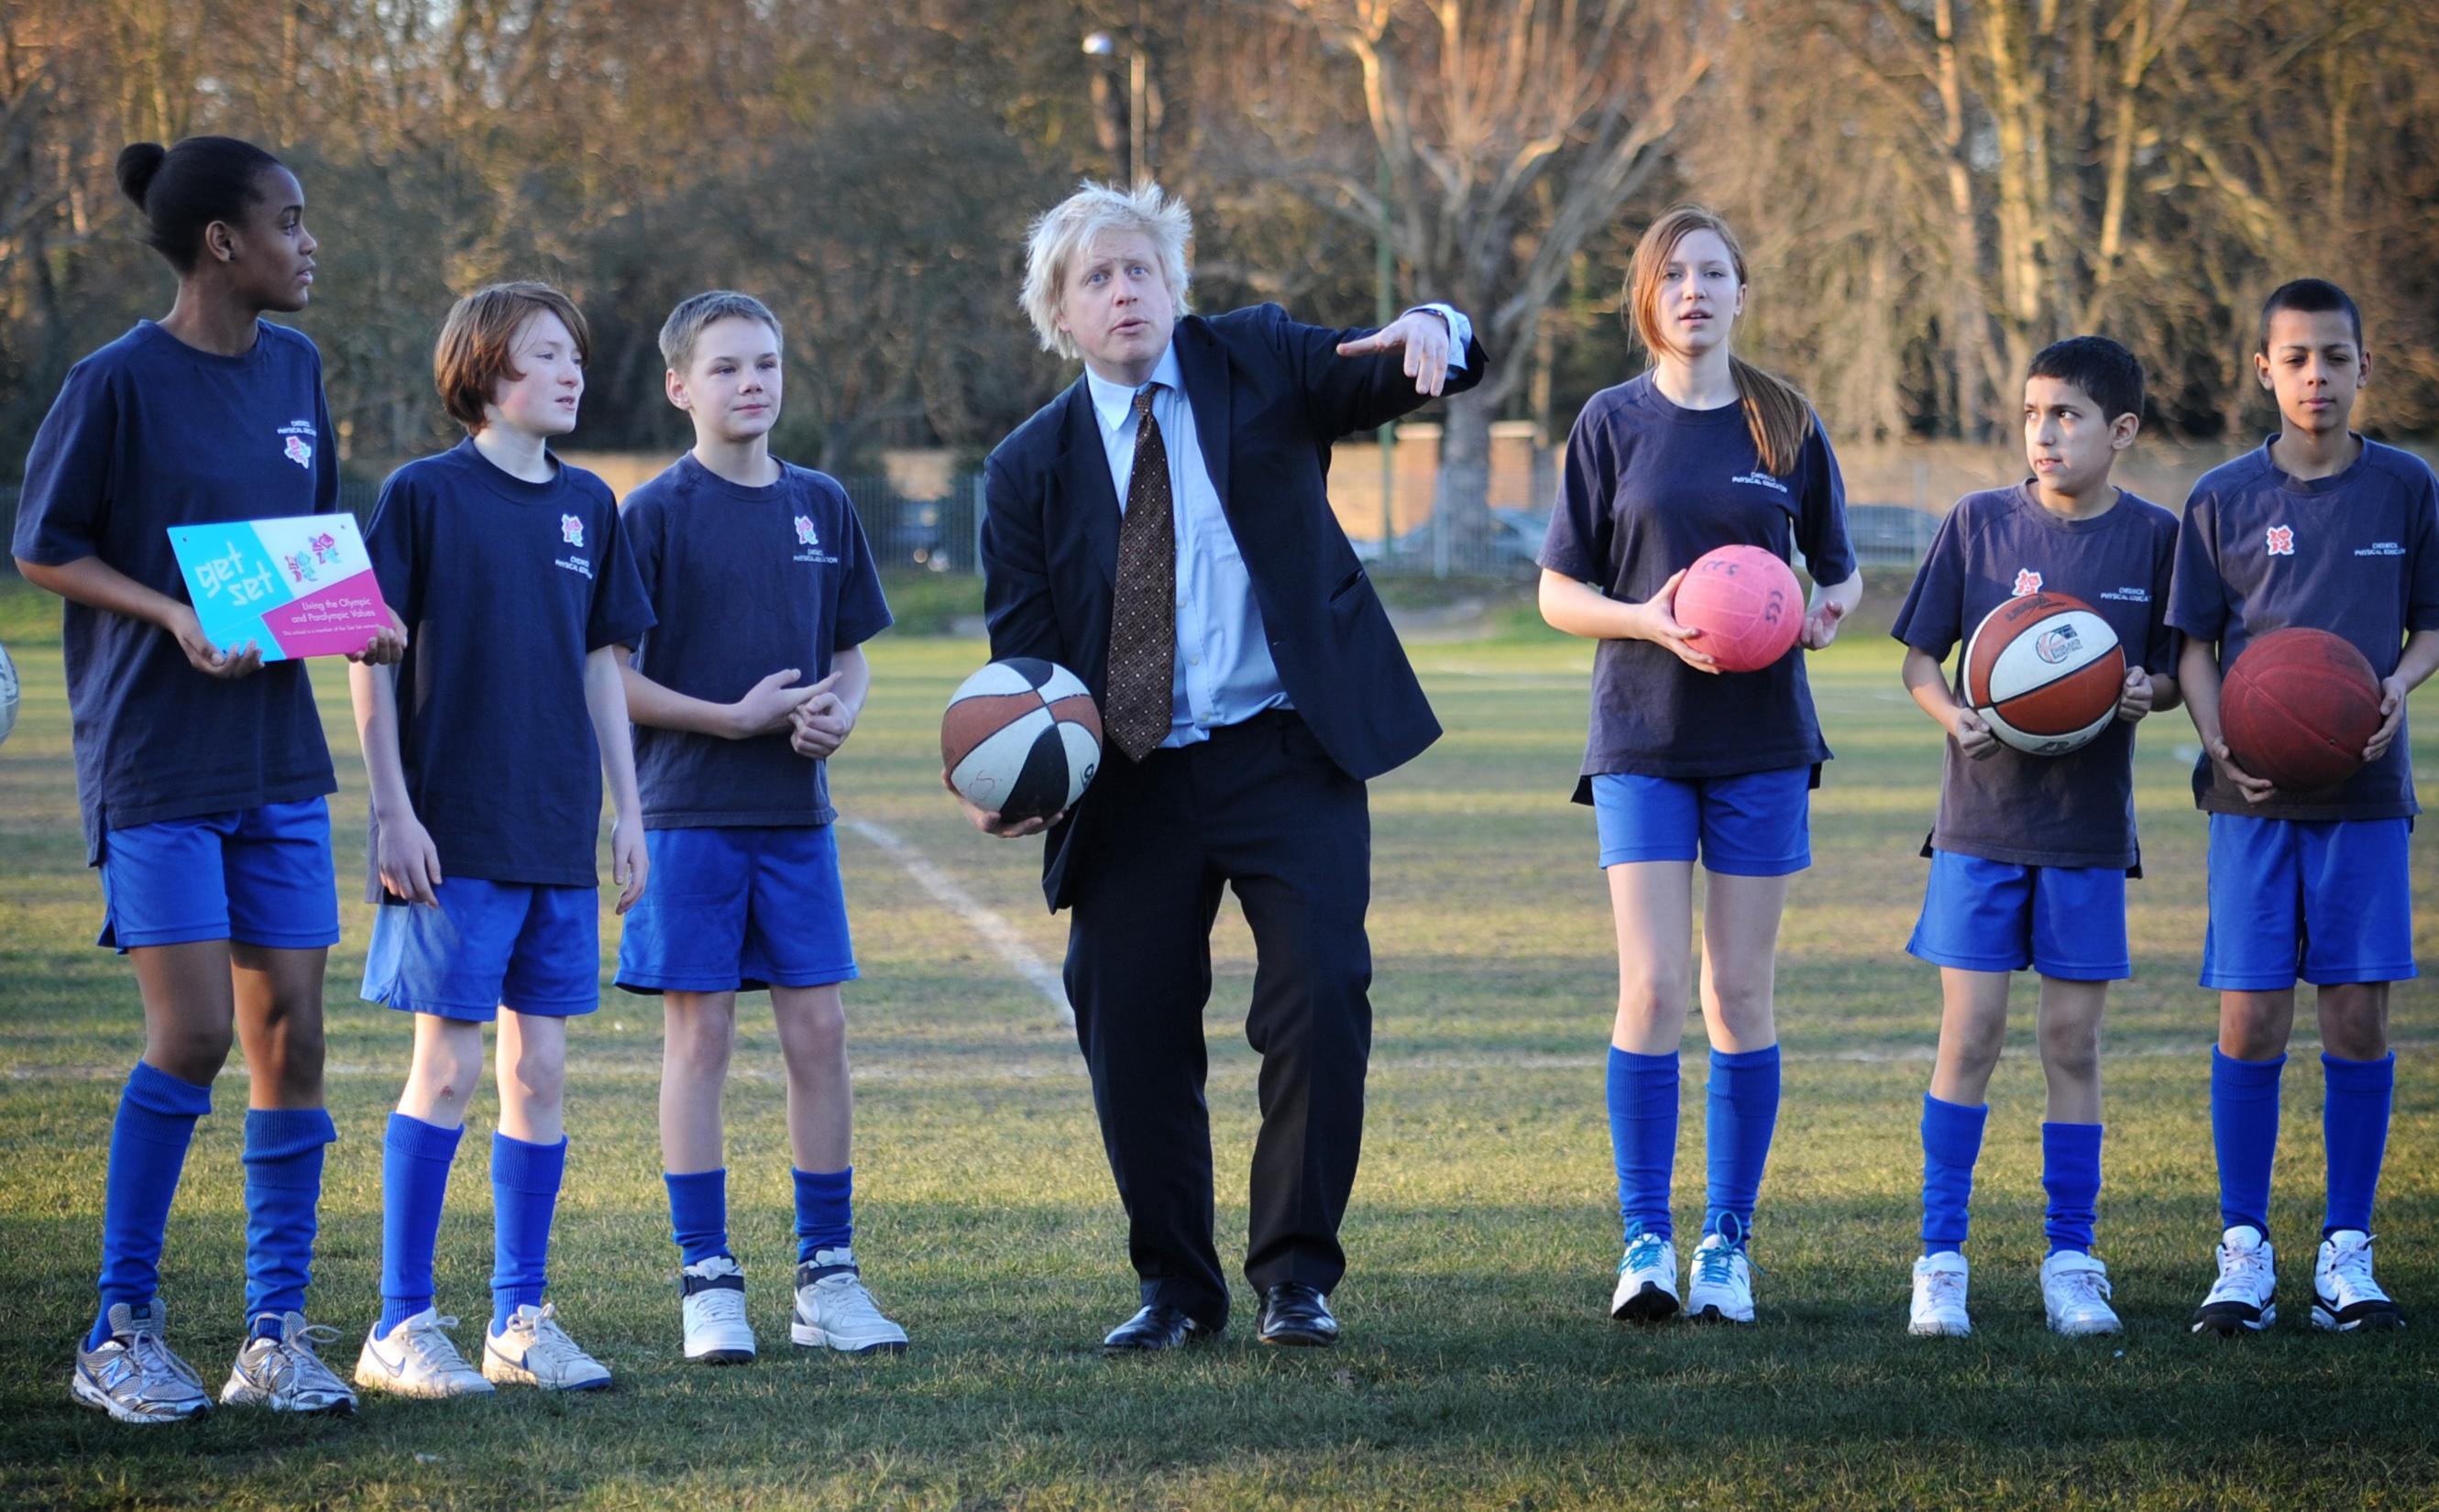 London Mayor Boris Johnson throws balls in the air with pupils from Chiswick Community School in west London where he and London 2012 Chairman Lord Coe told the school how many Olympic tickets they would receive through the London 2012 Ticketshare scheme.